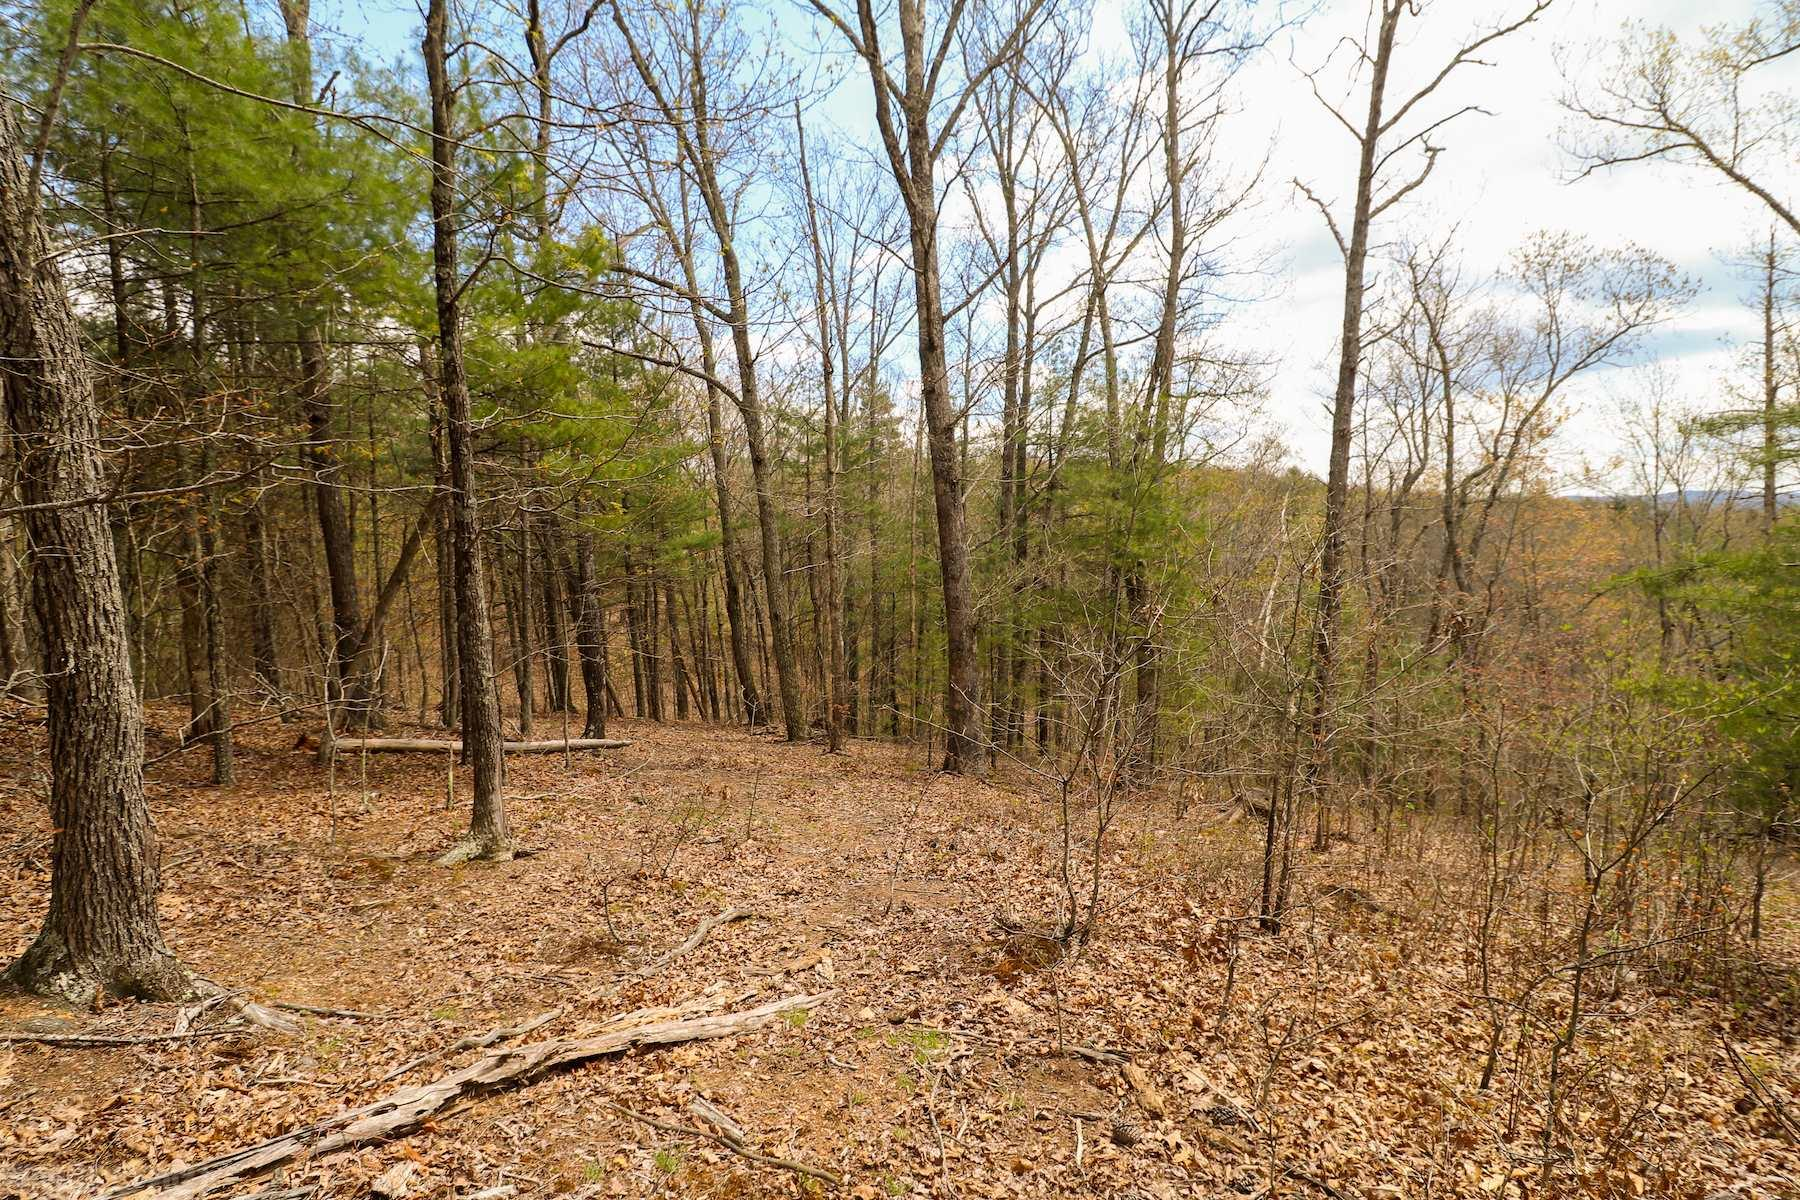 Beautiful wooded tract of land in Riner VA. This property has a driveway in place for access. Land is all wooded and would be great for recreational use. You could also clear a spot on the ridge and build your dream home with potential for a great view! Additional 24.16 acres available for purchase - 63.54 acres total for 219,500